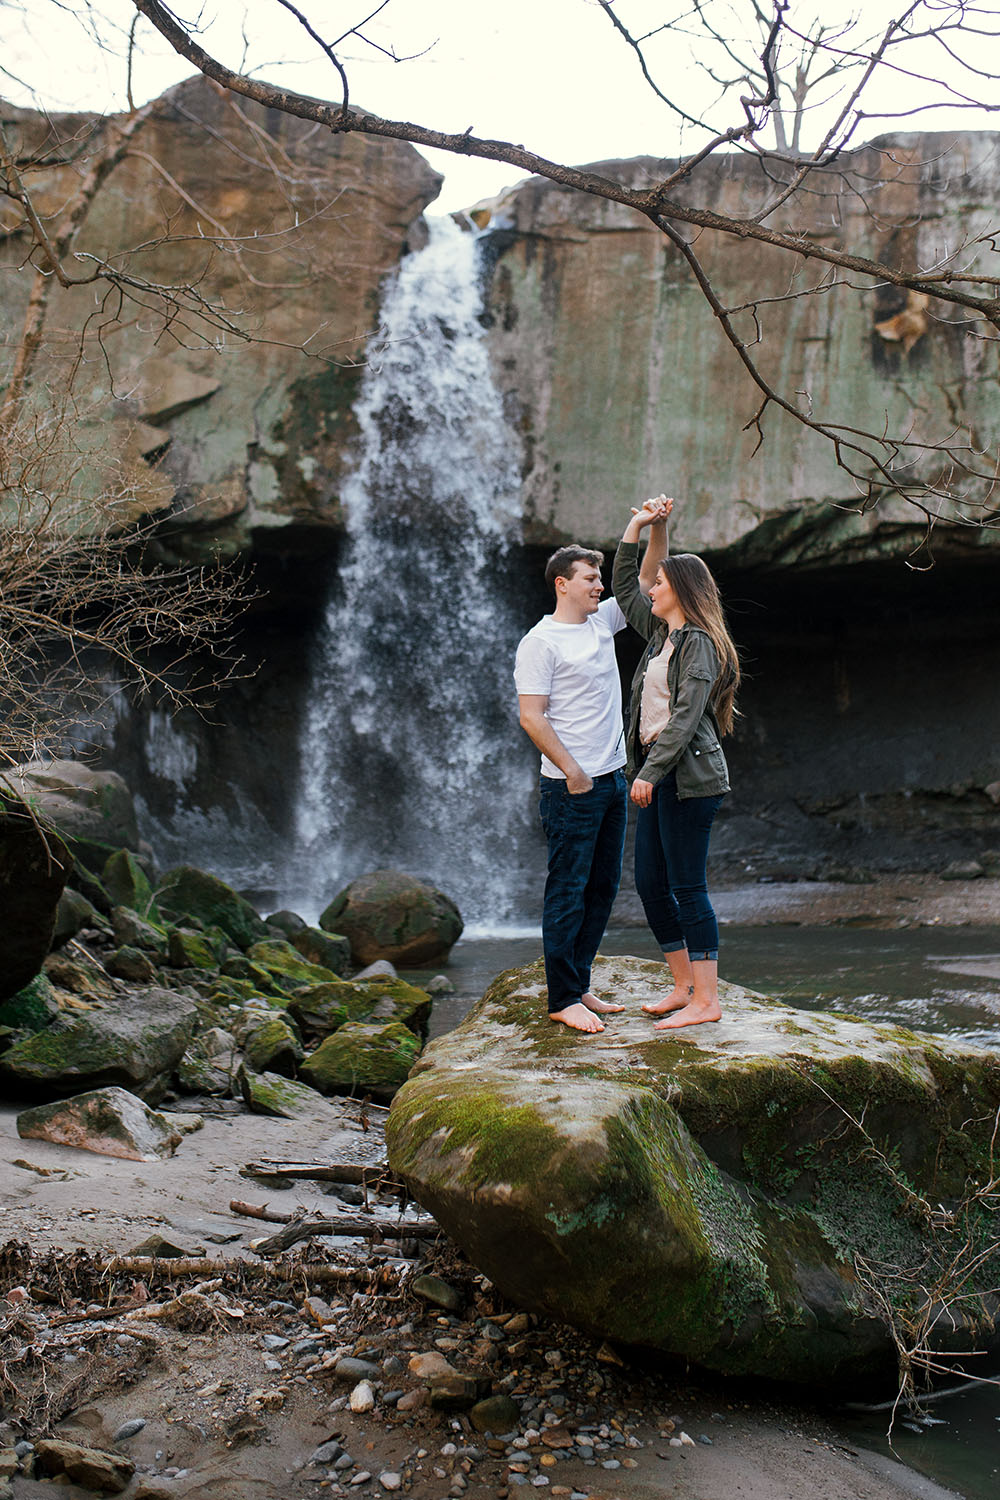 Shutter Up Studios | Engagement photographer in Williamsport Indiana | Barefoot dancing couples session at Williamsport Falls waterfall